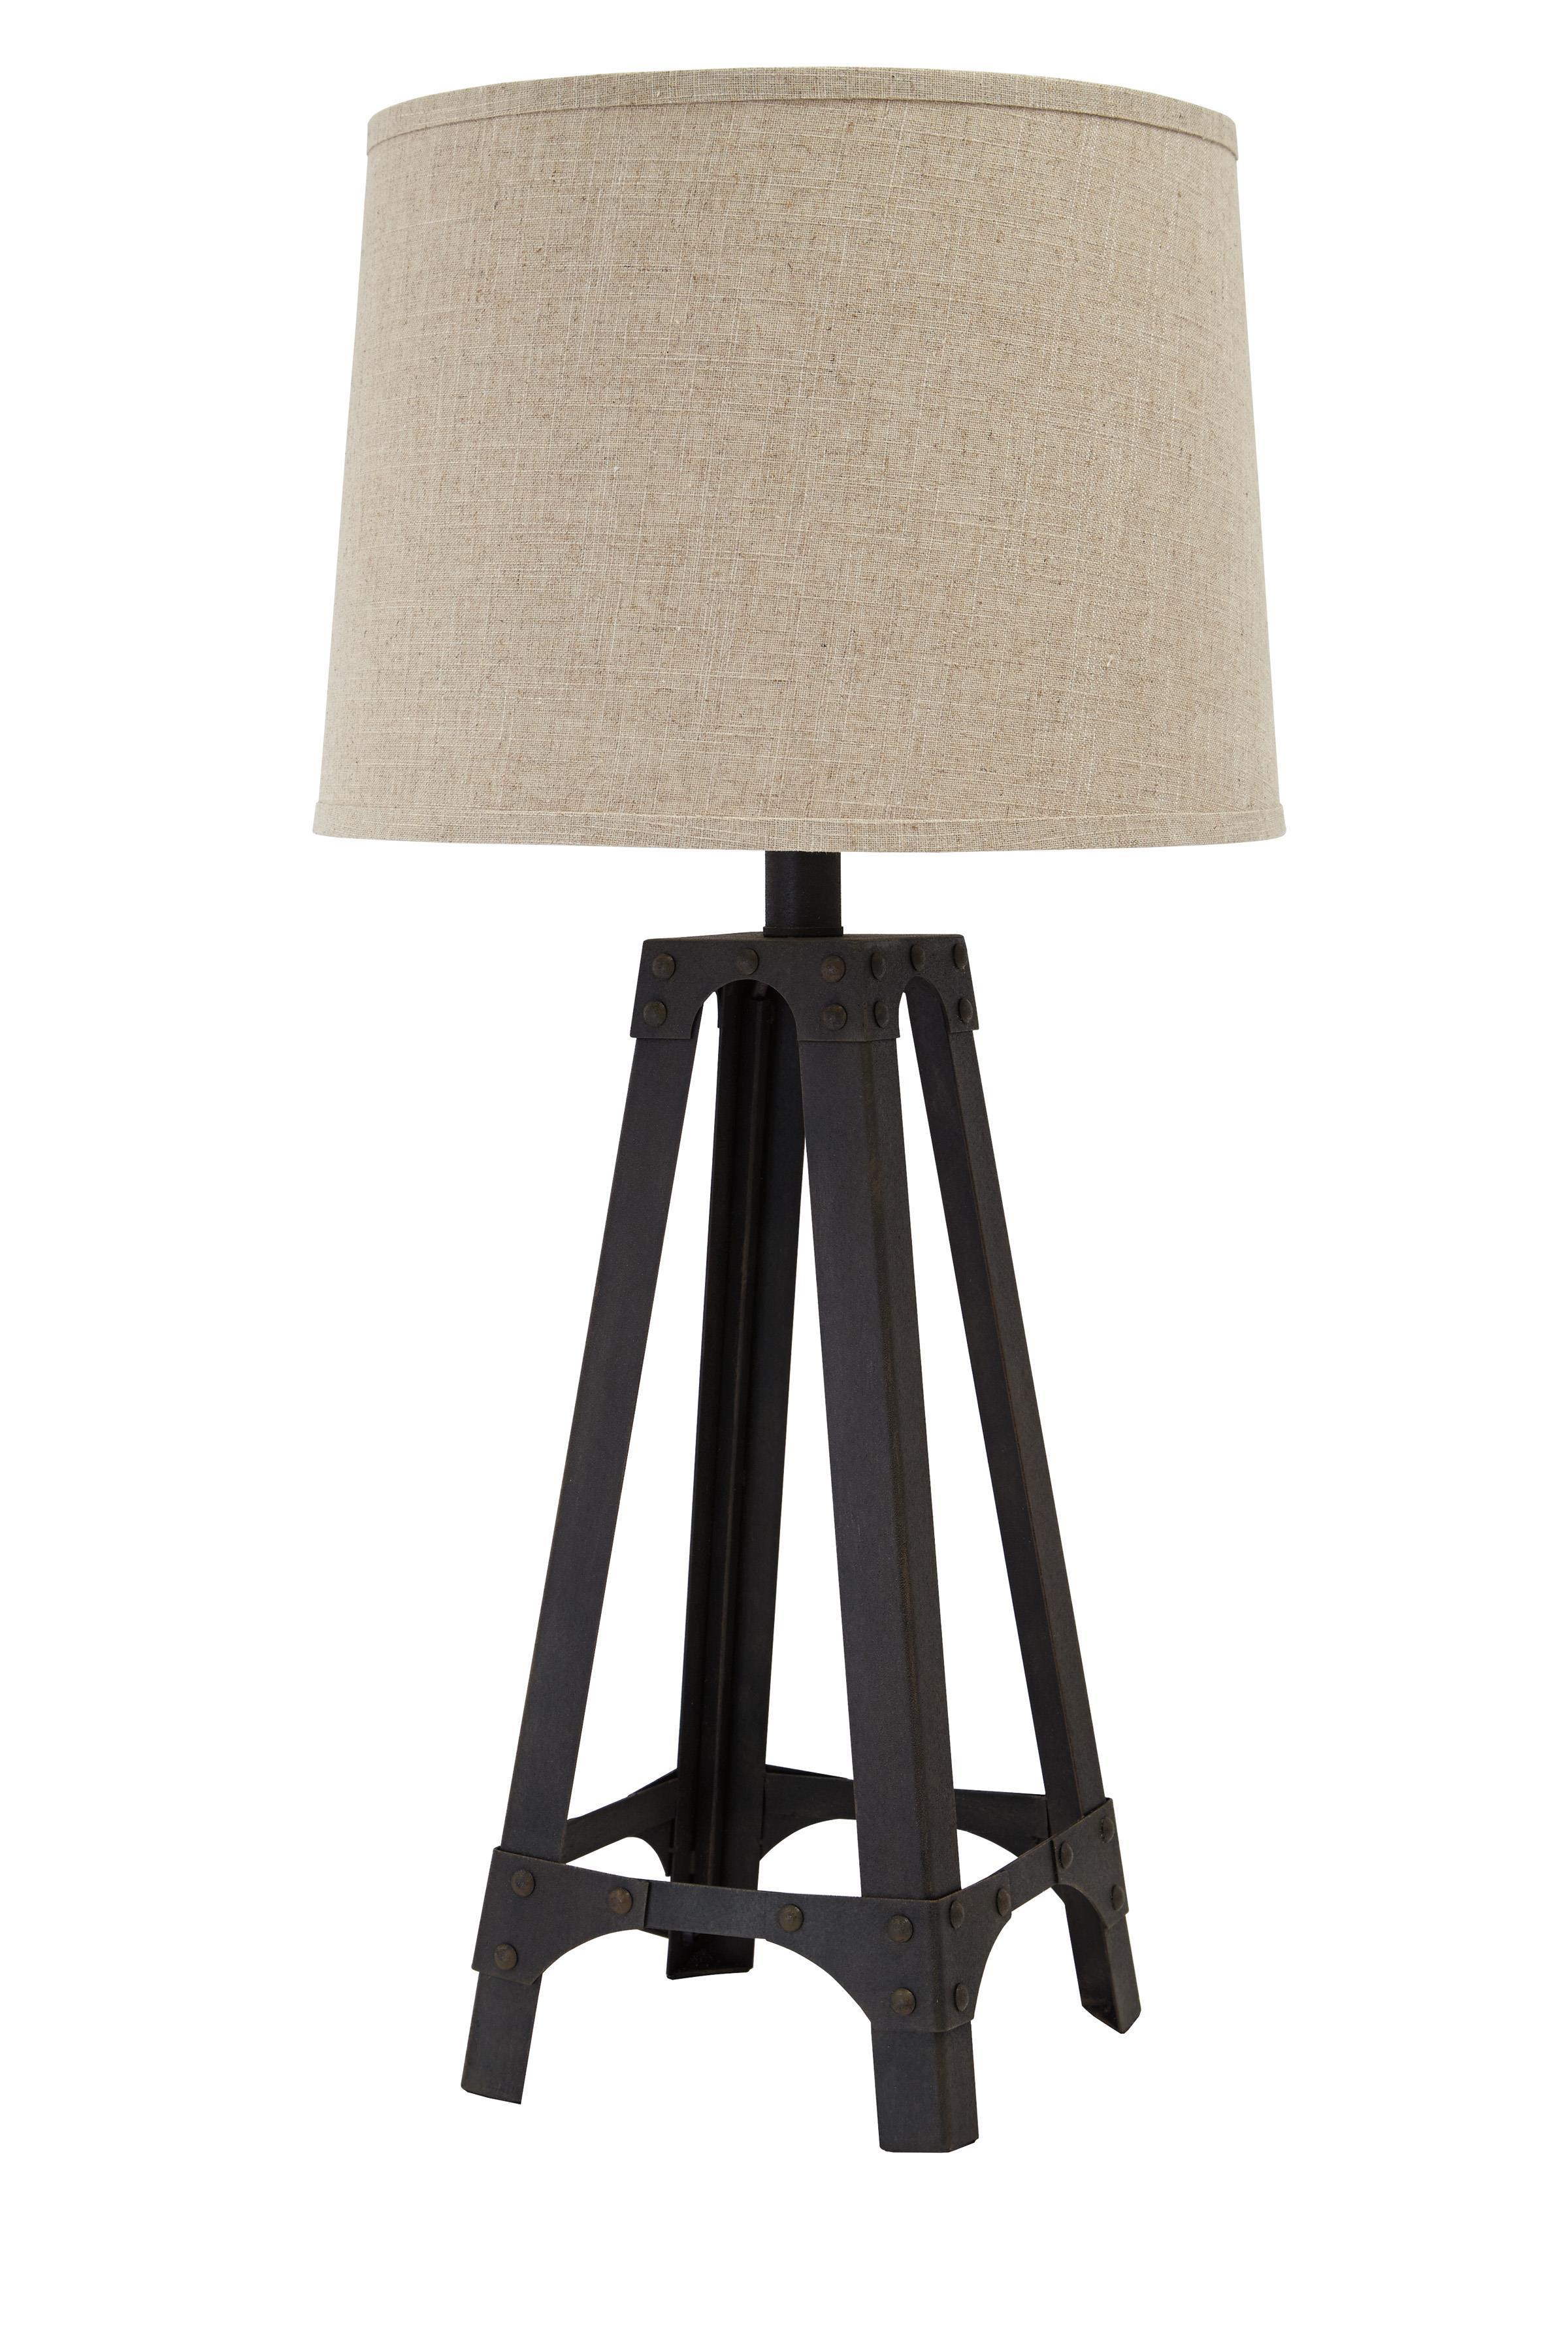 Signature Design By Ashley Lamps Vintage Style L207984 Metal Table